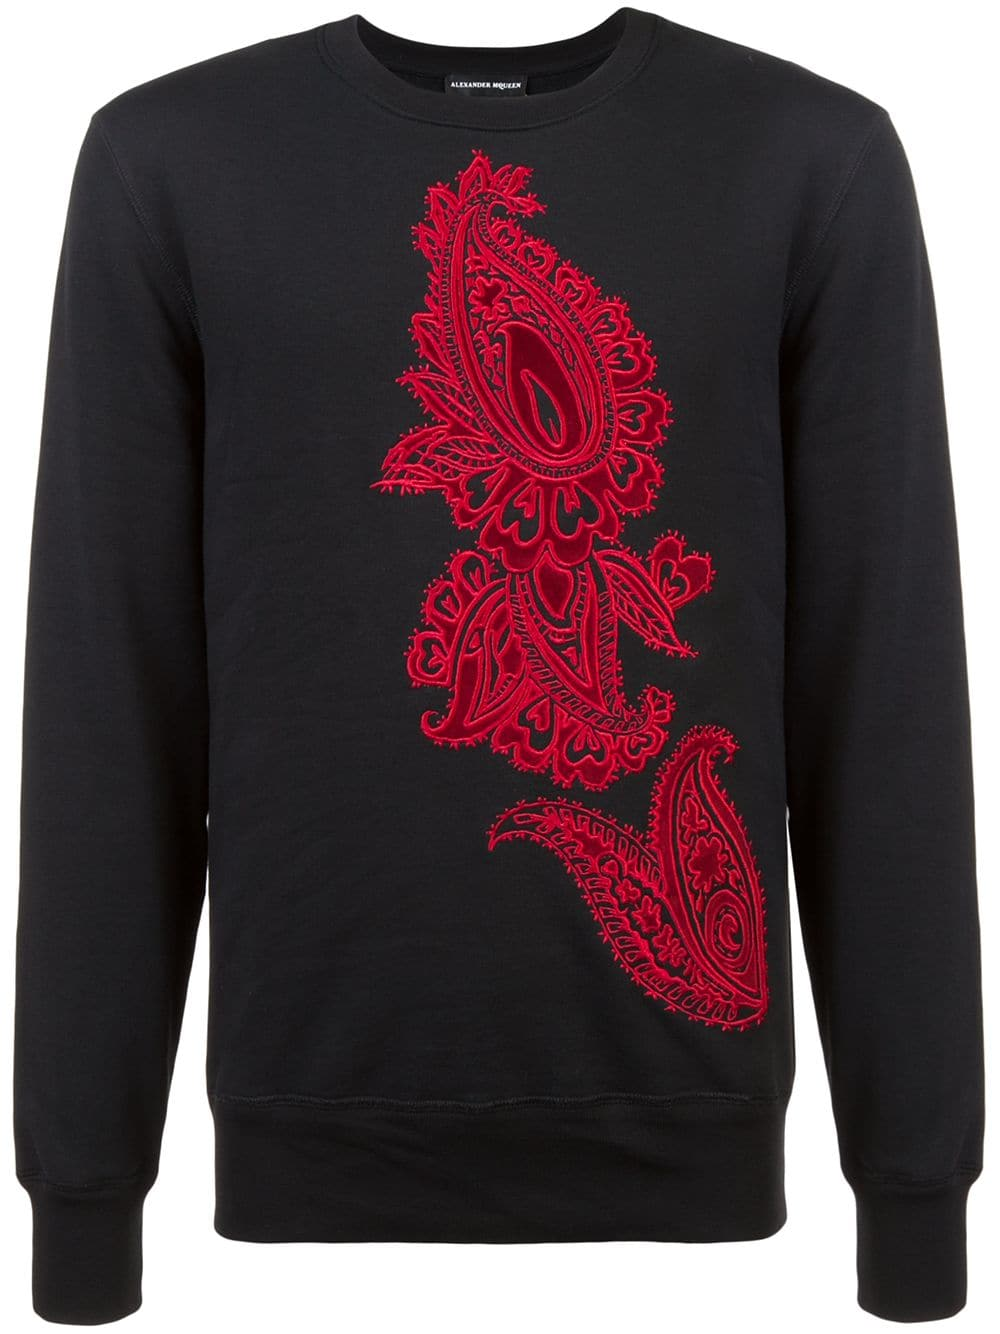 Alexander McQueen   Black Sweatshirt With Embroidered Design On Front